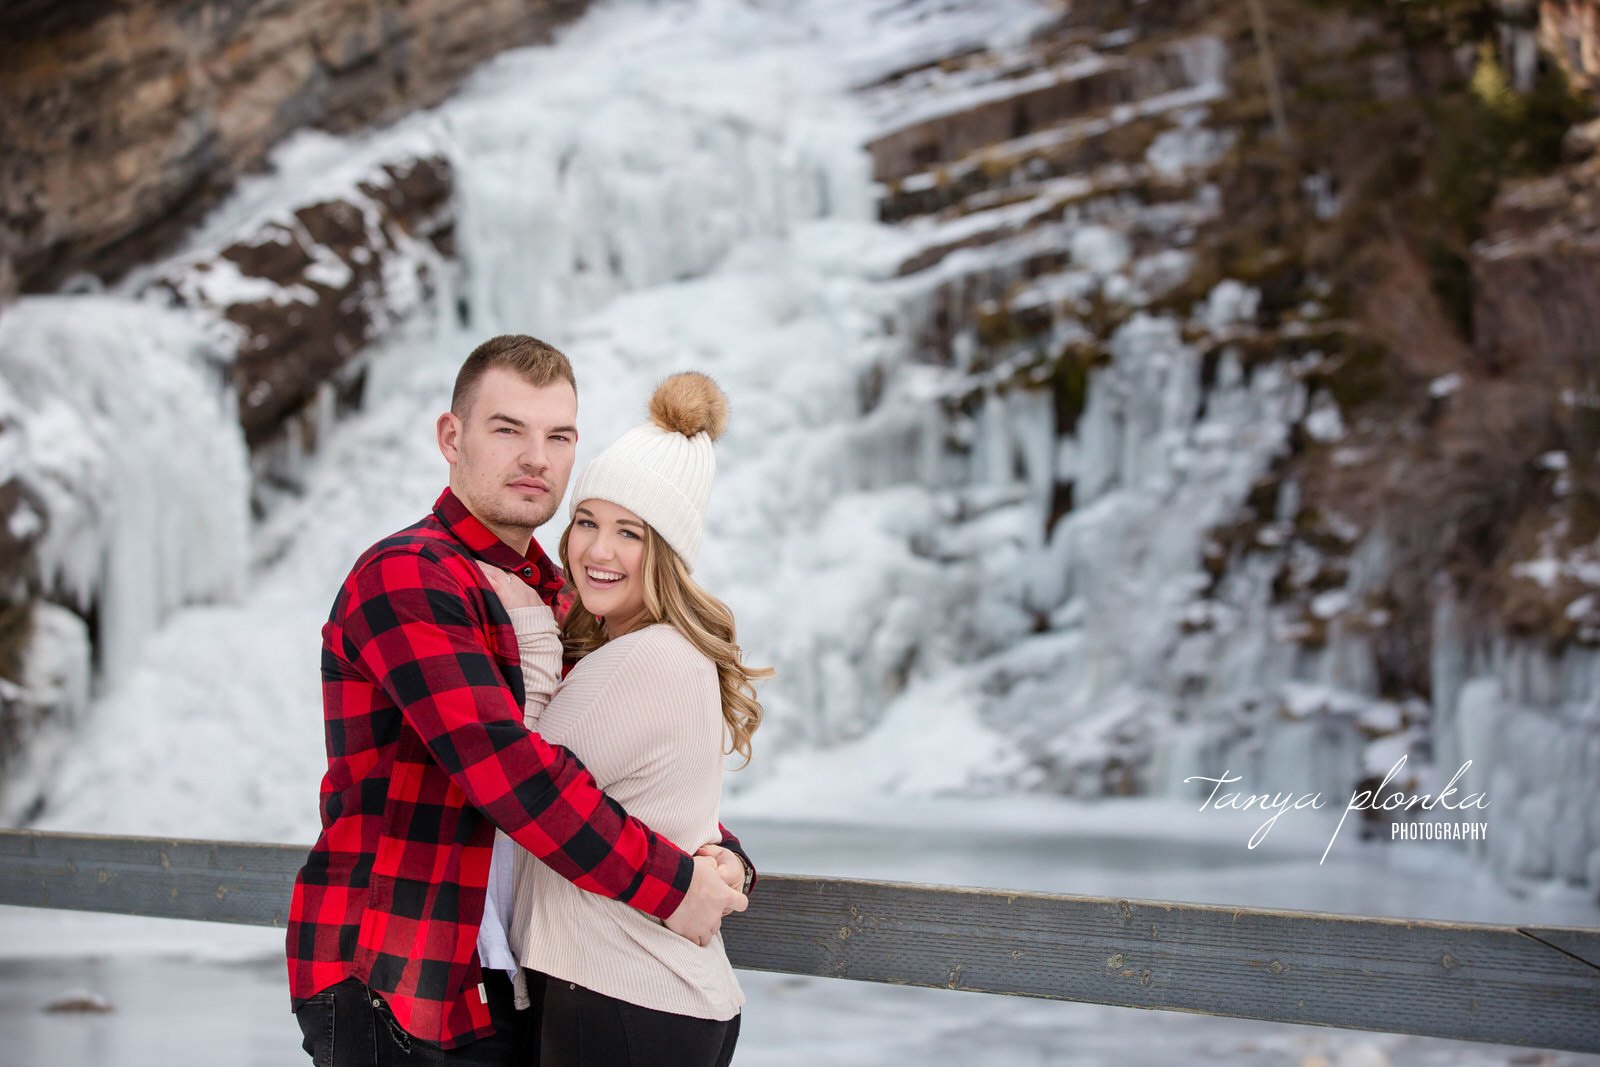 Man in red plaid shirt and woman in white toque hug in front of Cameron Falls in winter